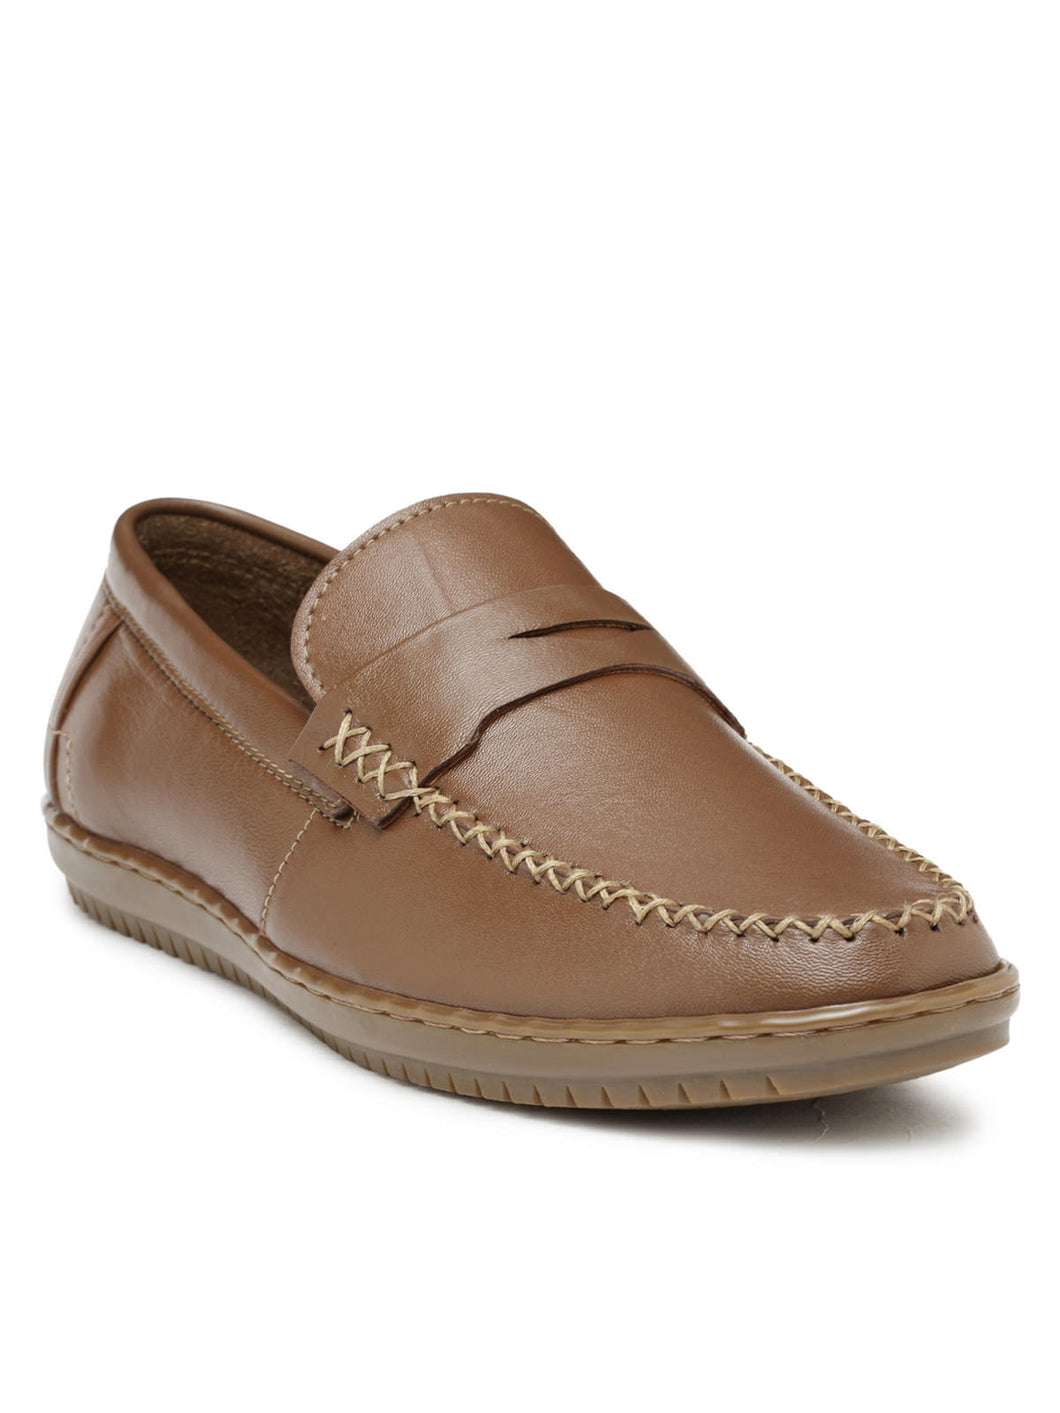 Teakwood Leather Tan Casual Shoes